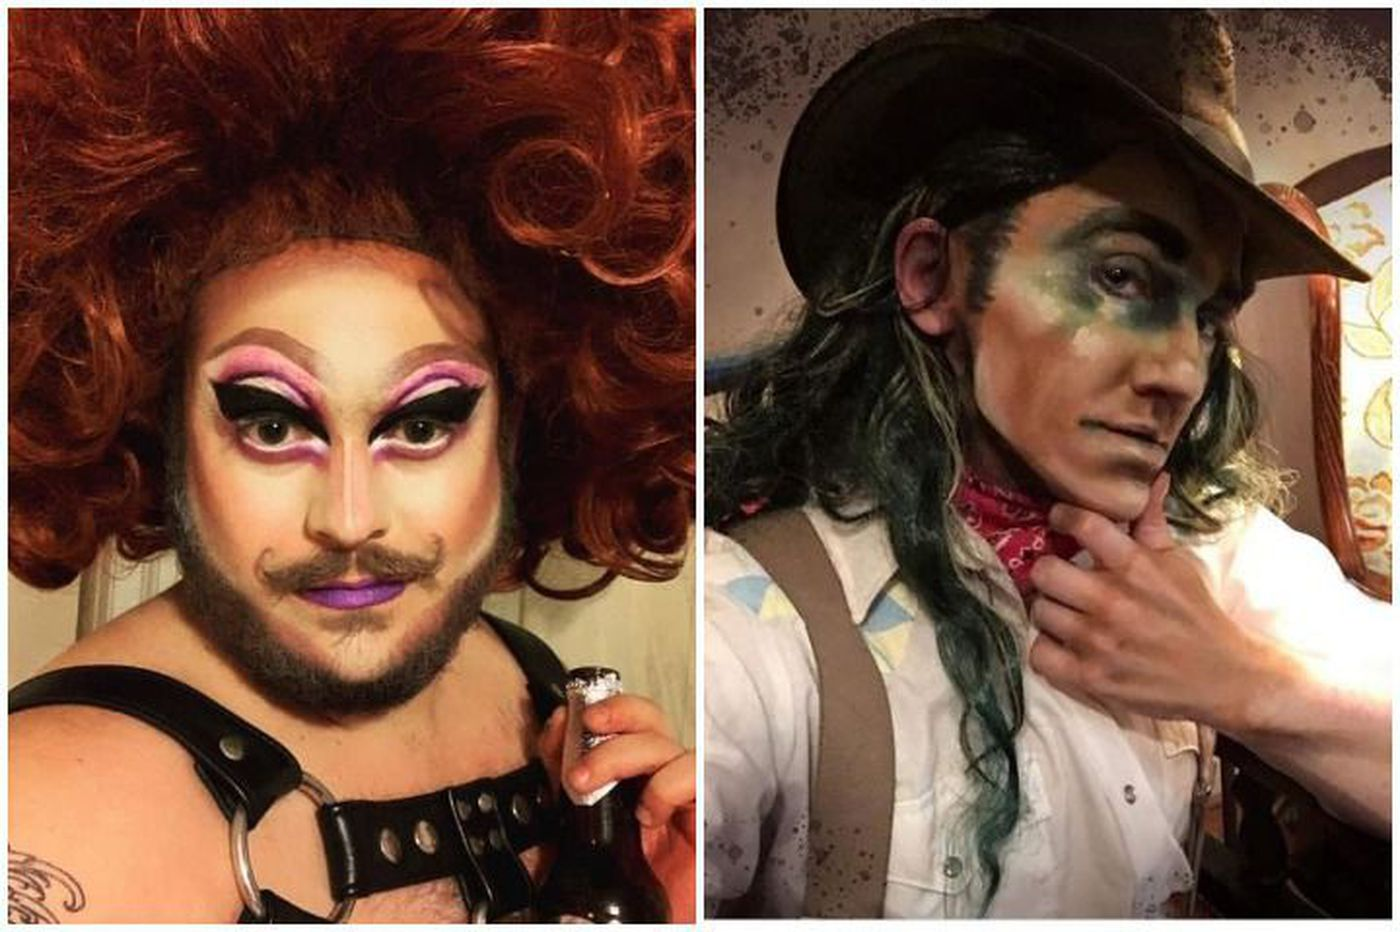 A virtual Philly drag show will raise money for out-of-work artists